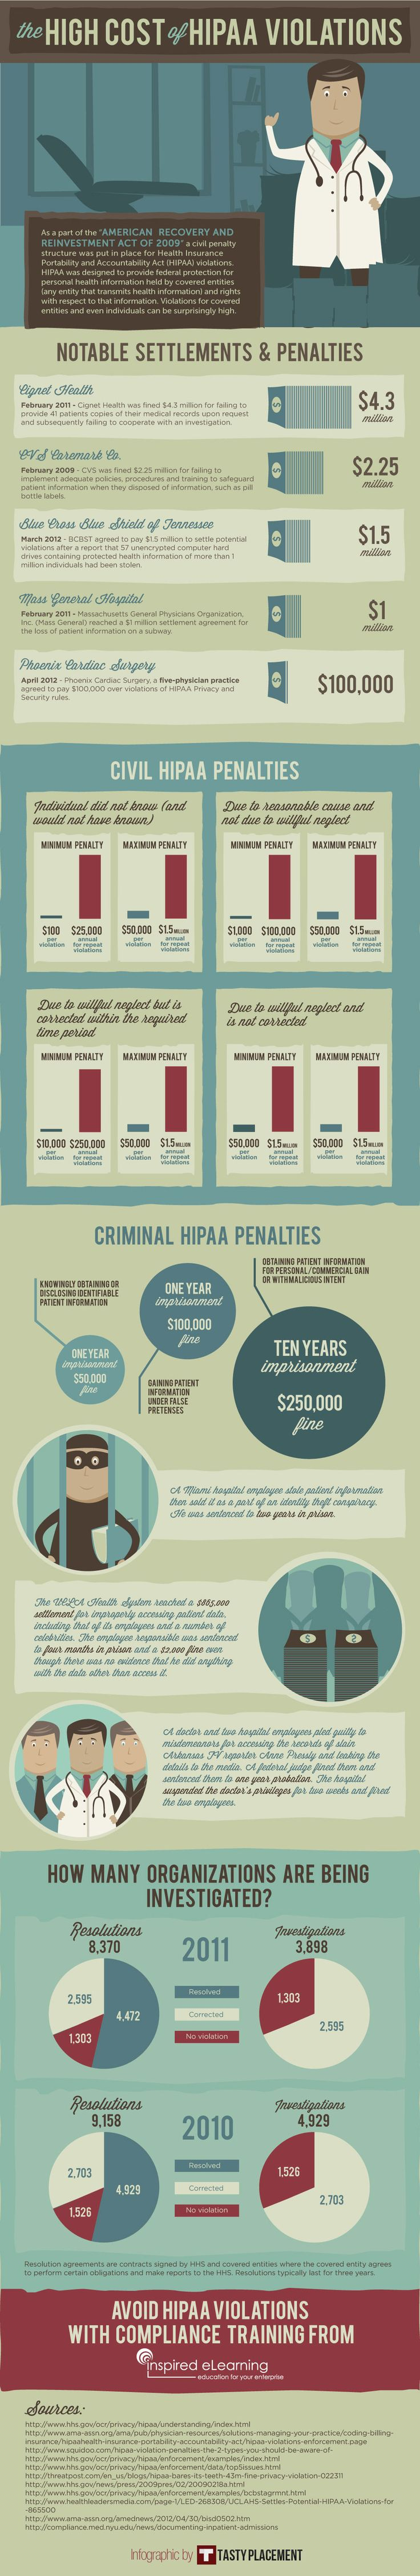 The High Cost of HIPAA Violations - Infographic